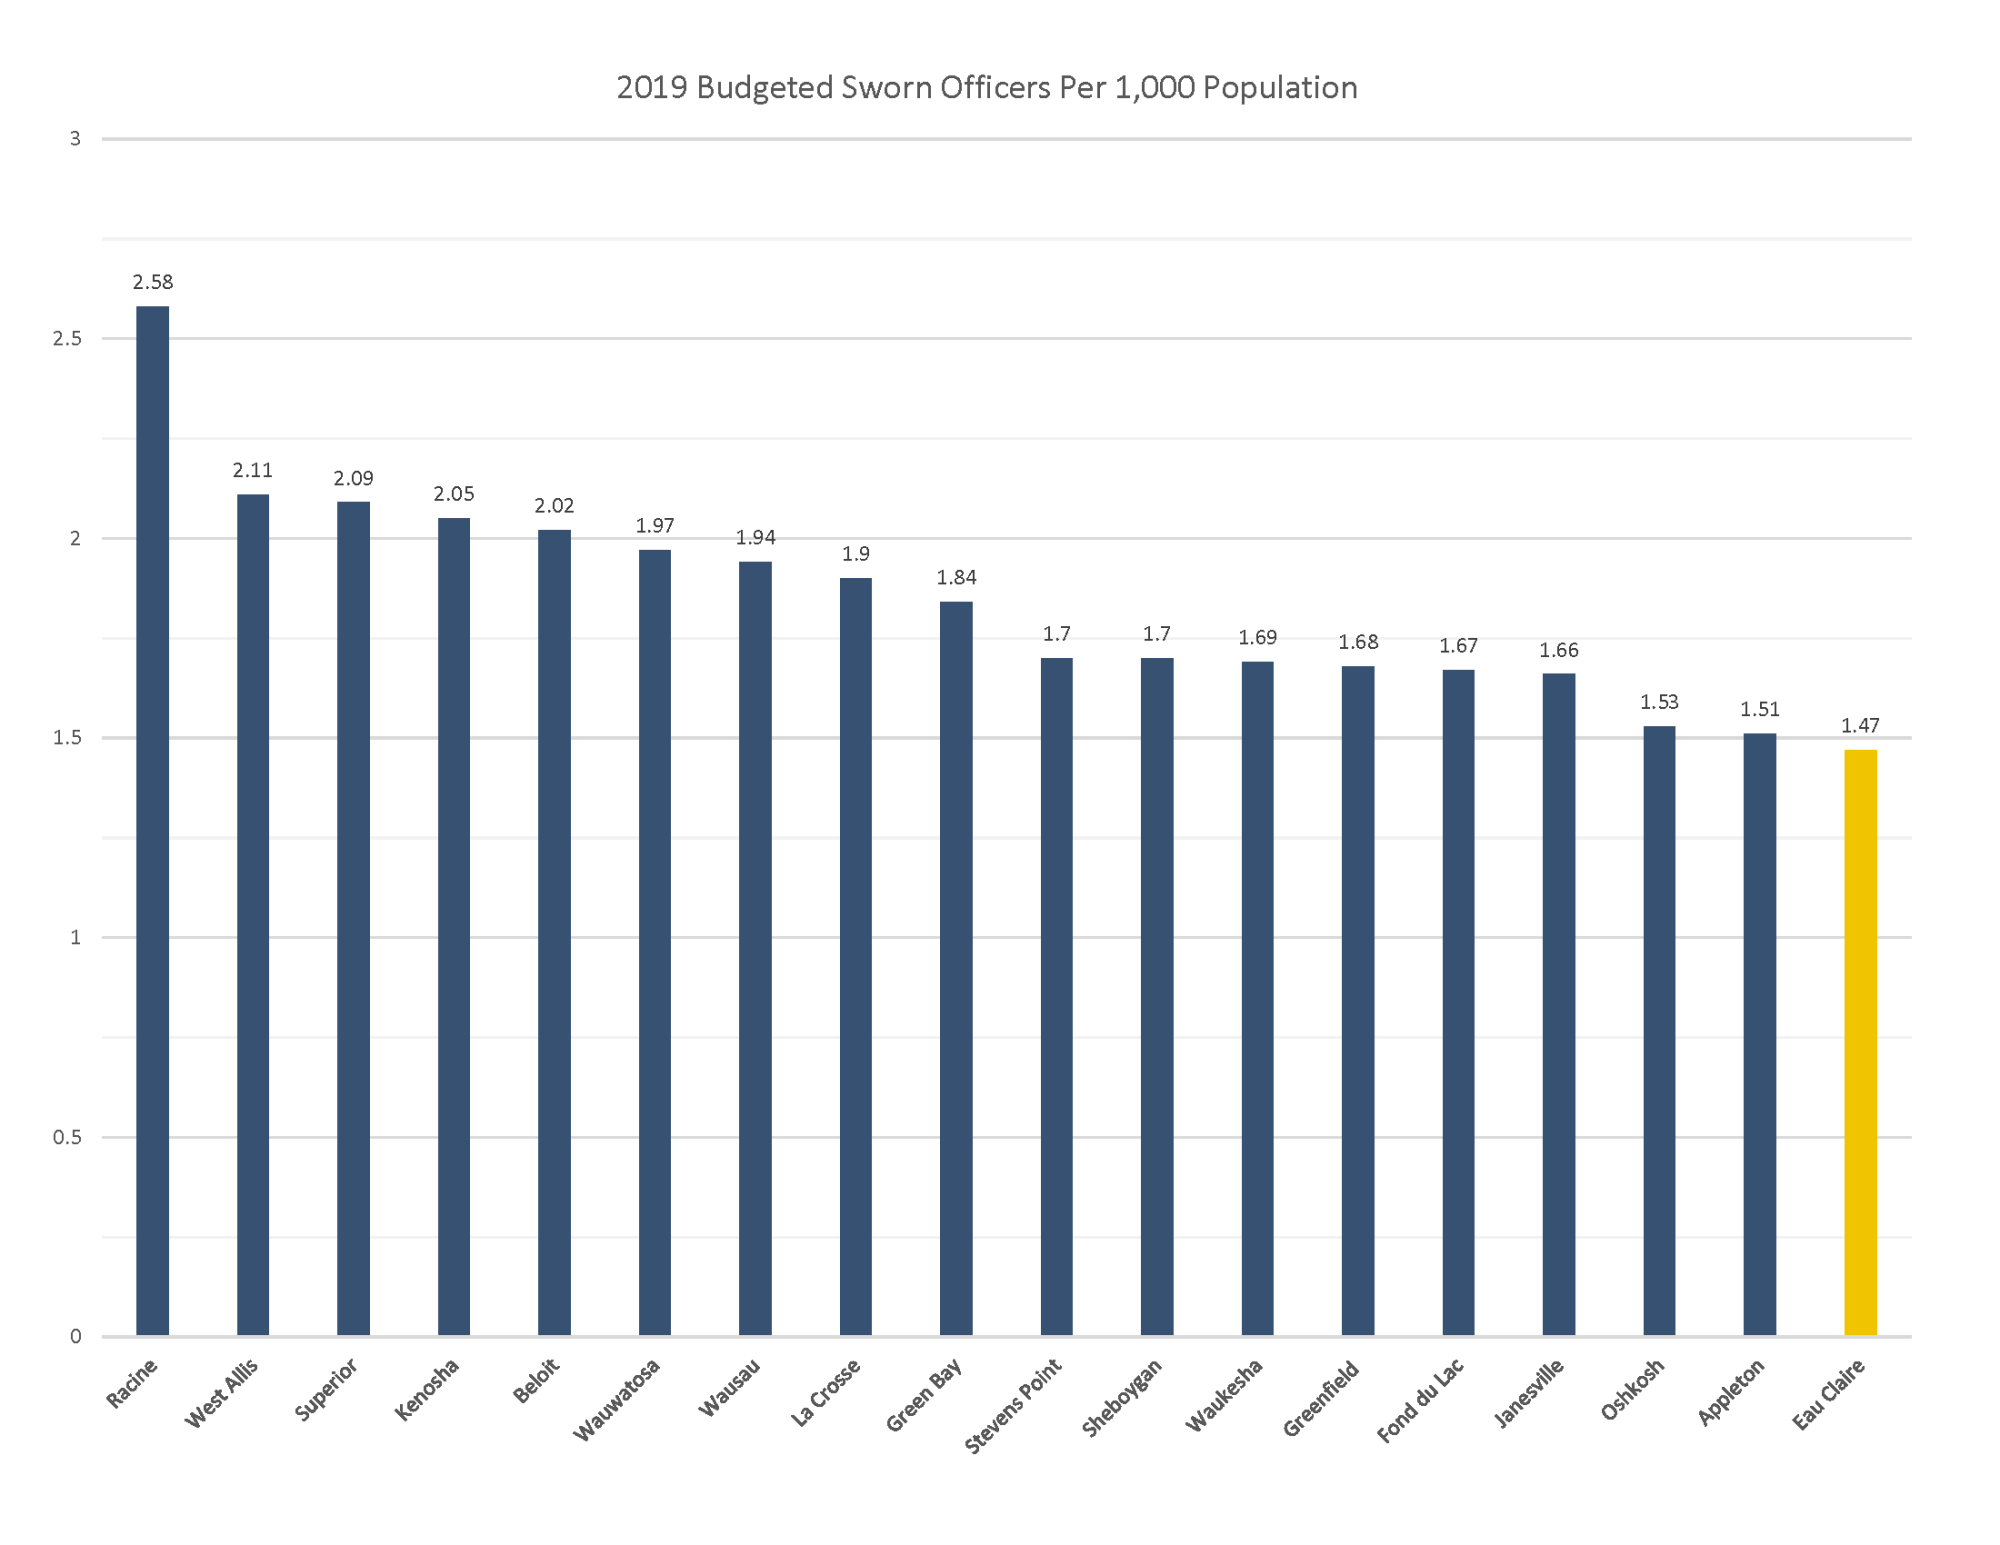 2019 Budgeted Sworn Officers Per 1000 Population